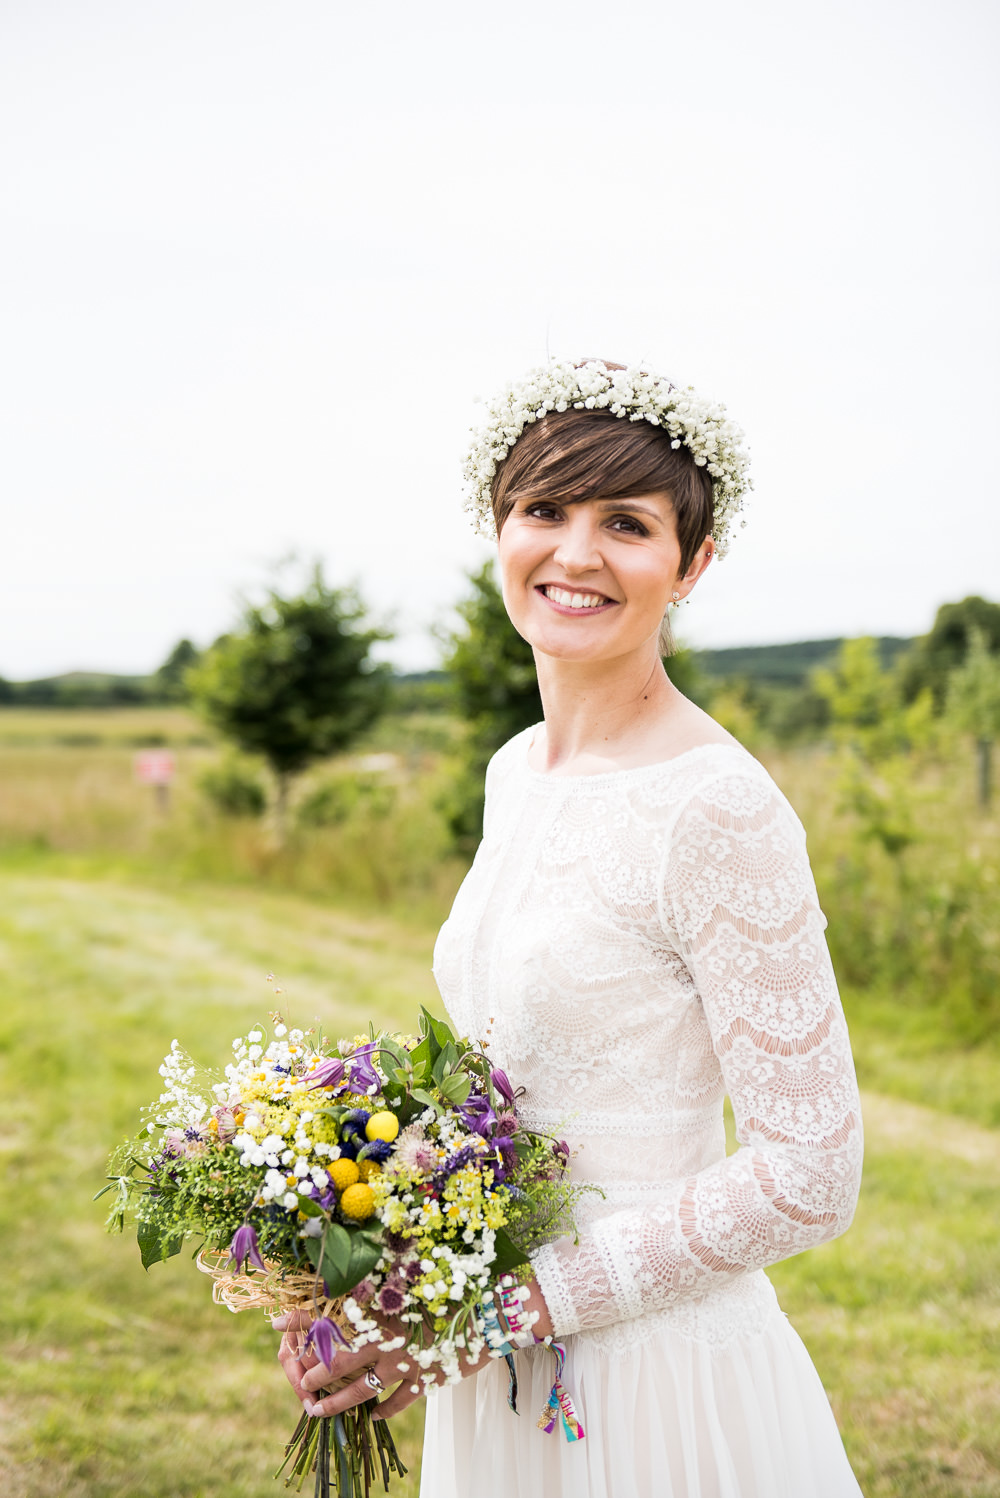 Bride Bridal Long Sleeve Lace Dress Lace Gypsophila Crown Wildflower Bouquet Inkersall Grange Farm Wedding Jessica Grace Photography